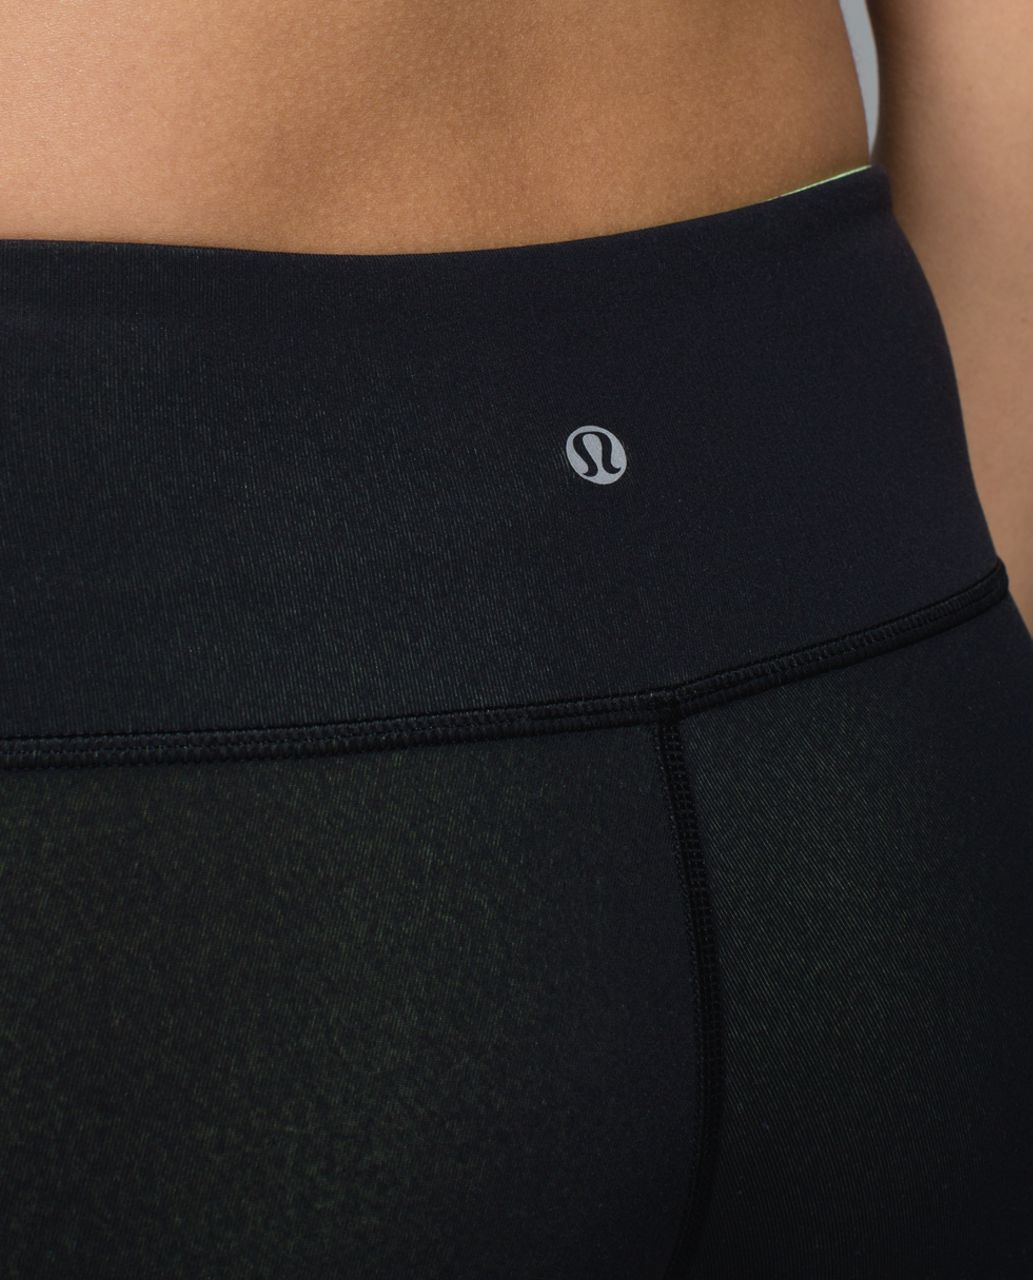 Lululemon Wunder Under Crop II (Reversible) - Clear Mint / Black